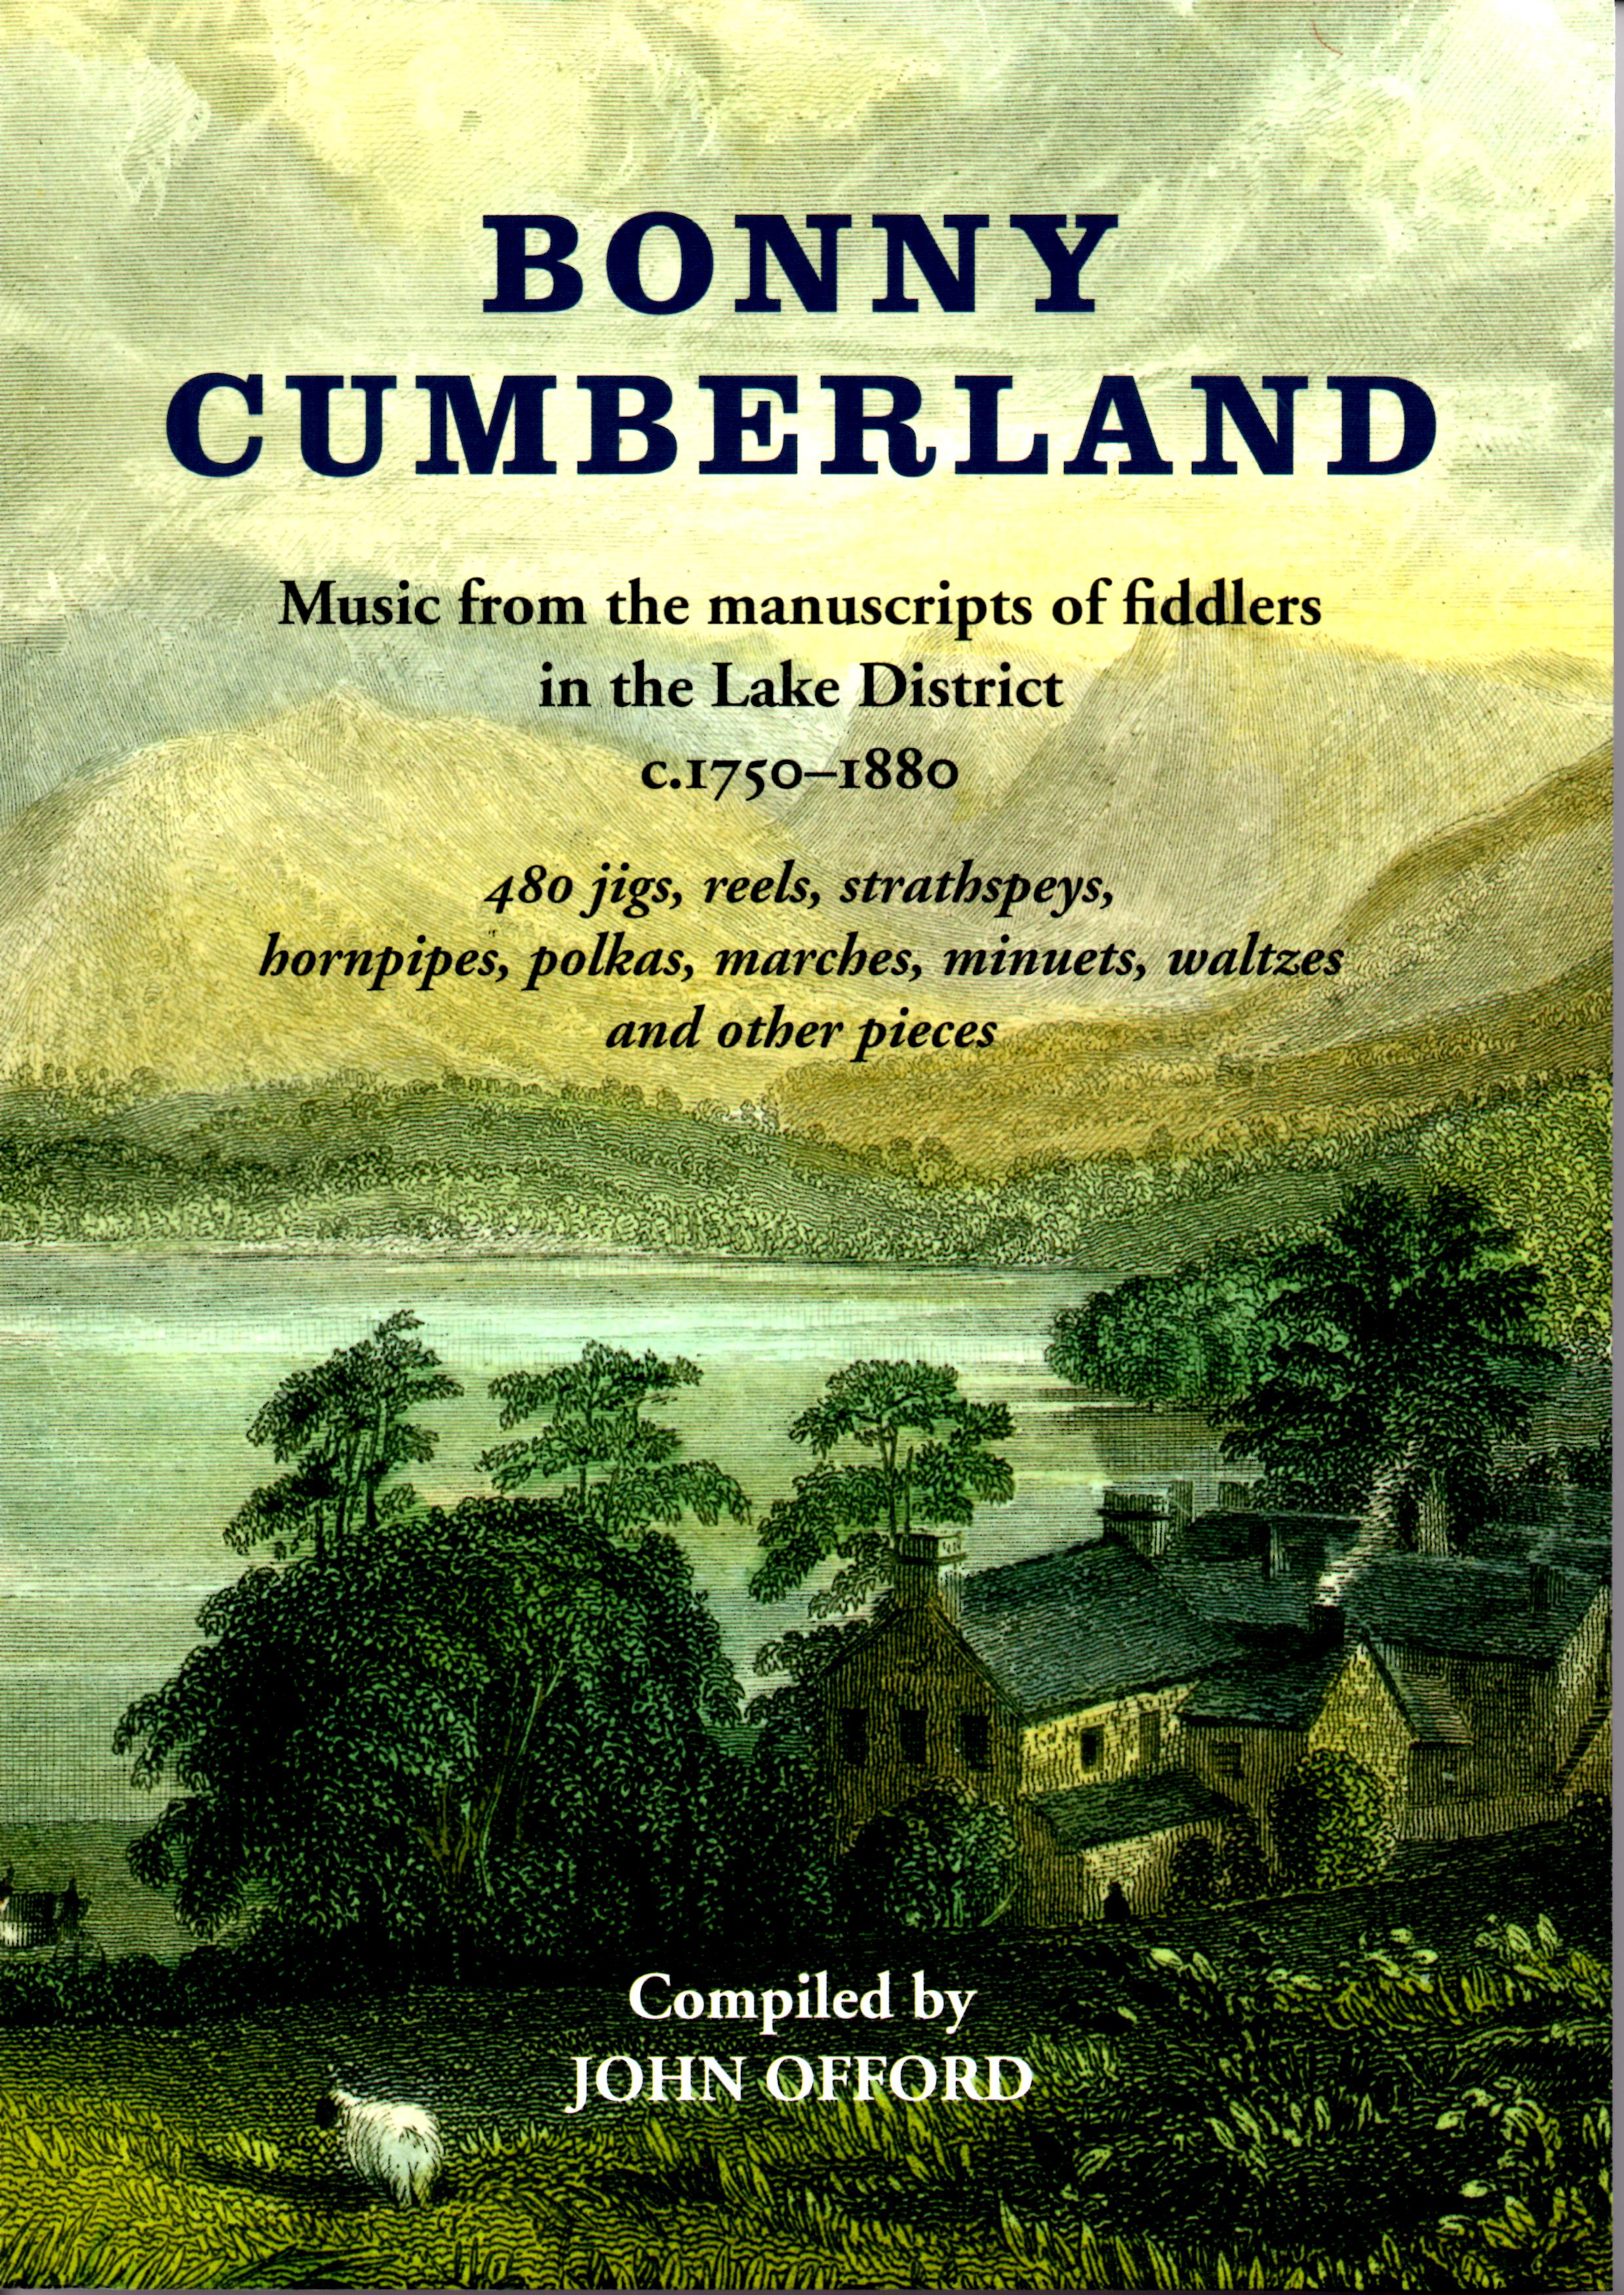 Bonny Cumberland: Music From The Manuscripts Of Fiddlers In The Lake District c.1750-1880